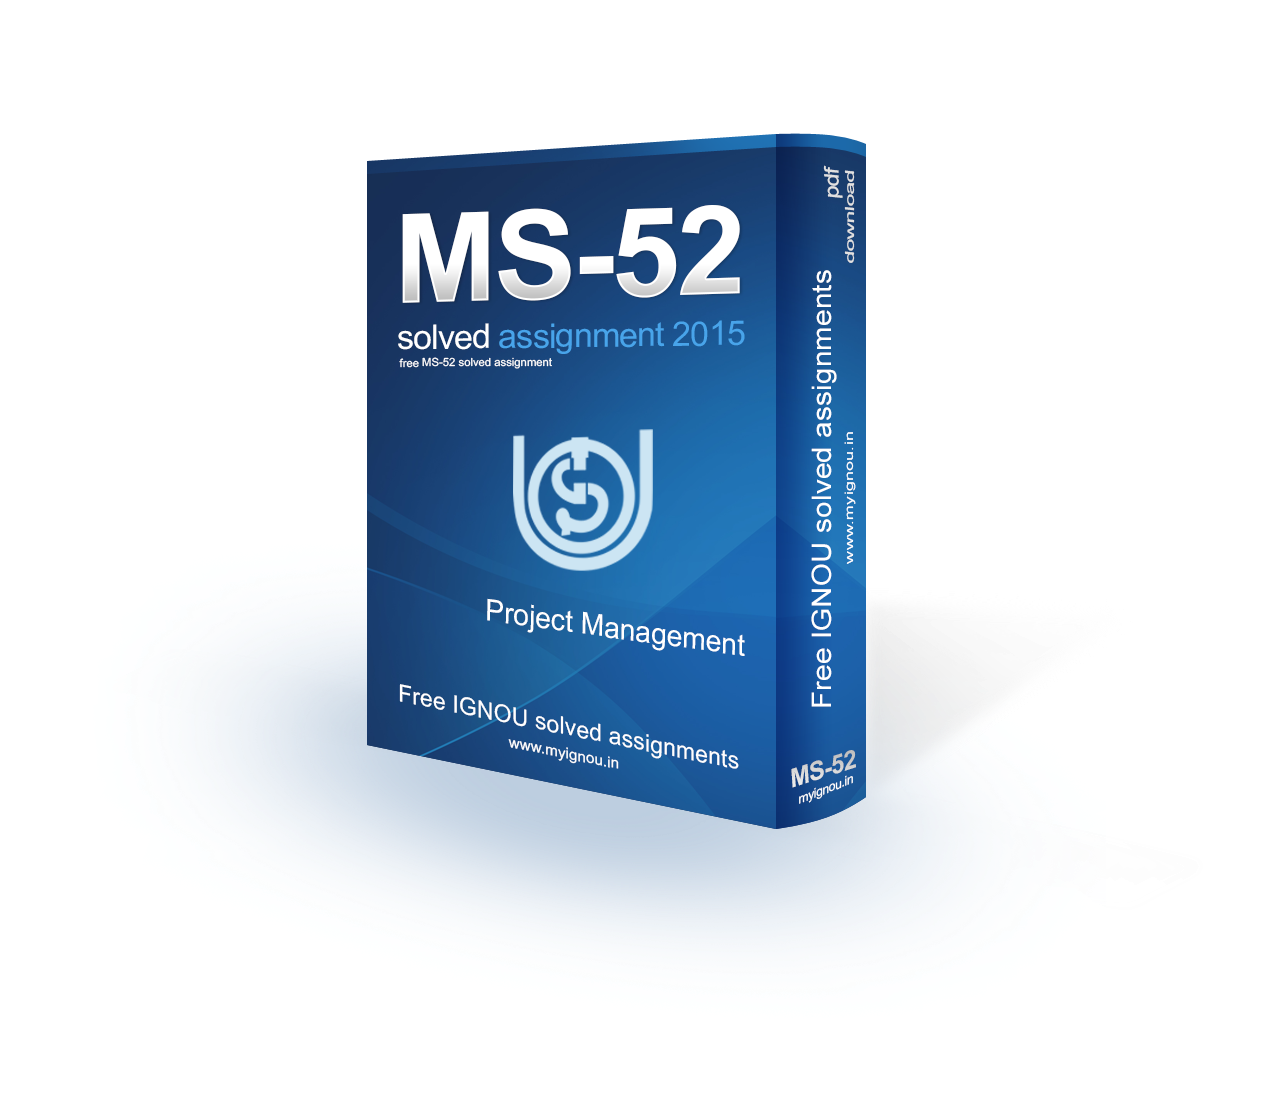 ms 52 solved assignment 2015